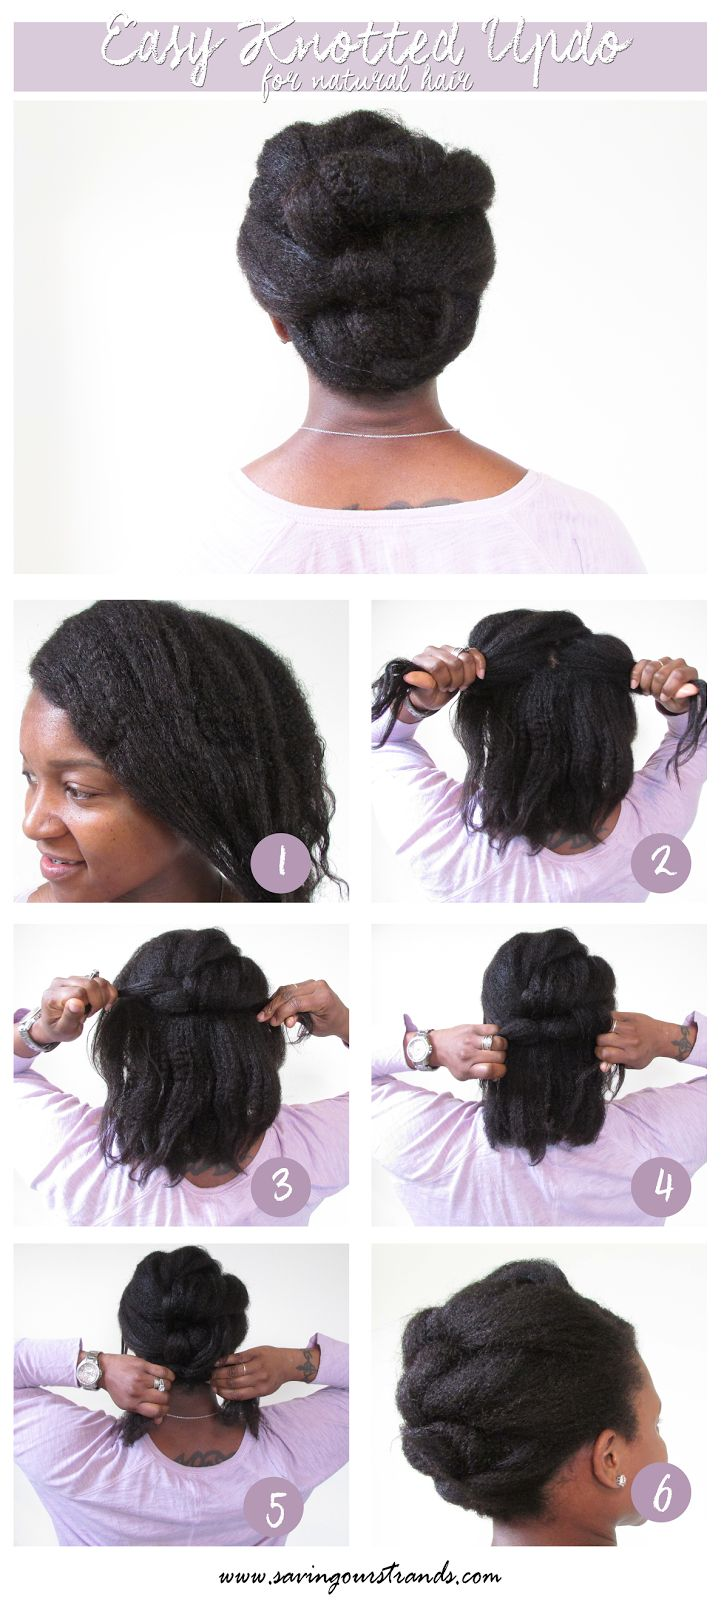 Natural hairstyles for short hair black women hair and tattoos - Savingourstrands Celebrating Our Natural Kinks Curls Coils Tutorial Easy Knotted Updo